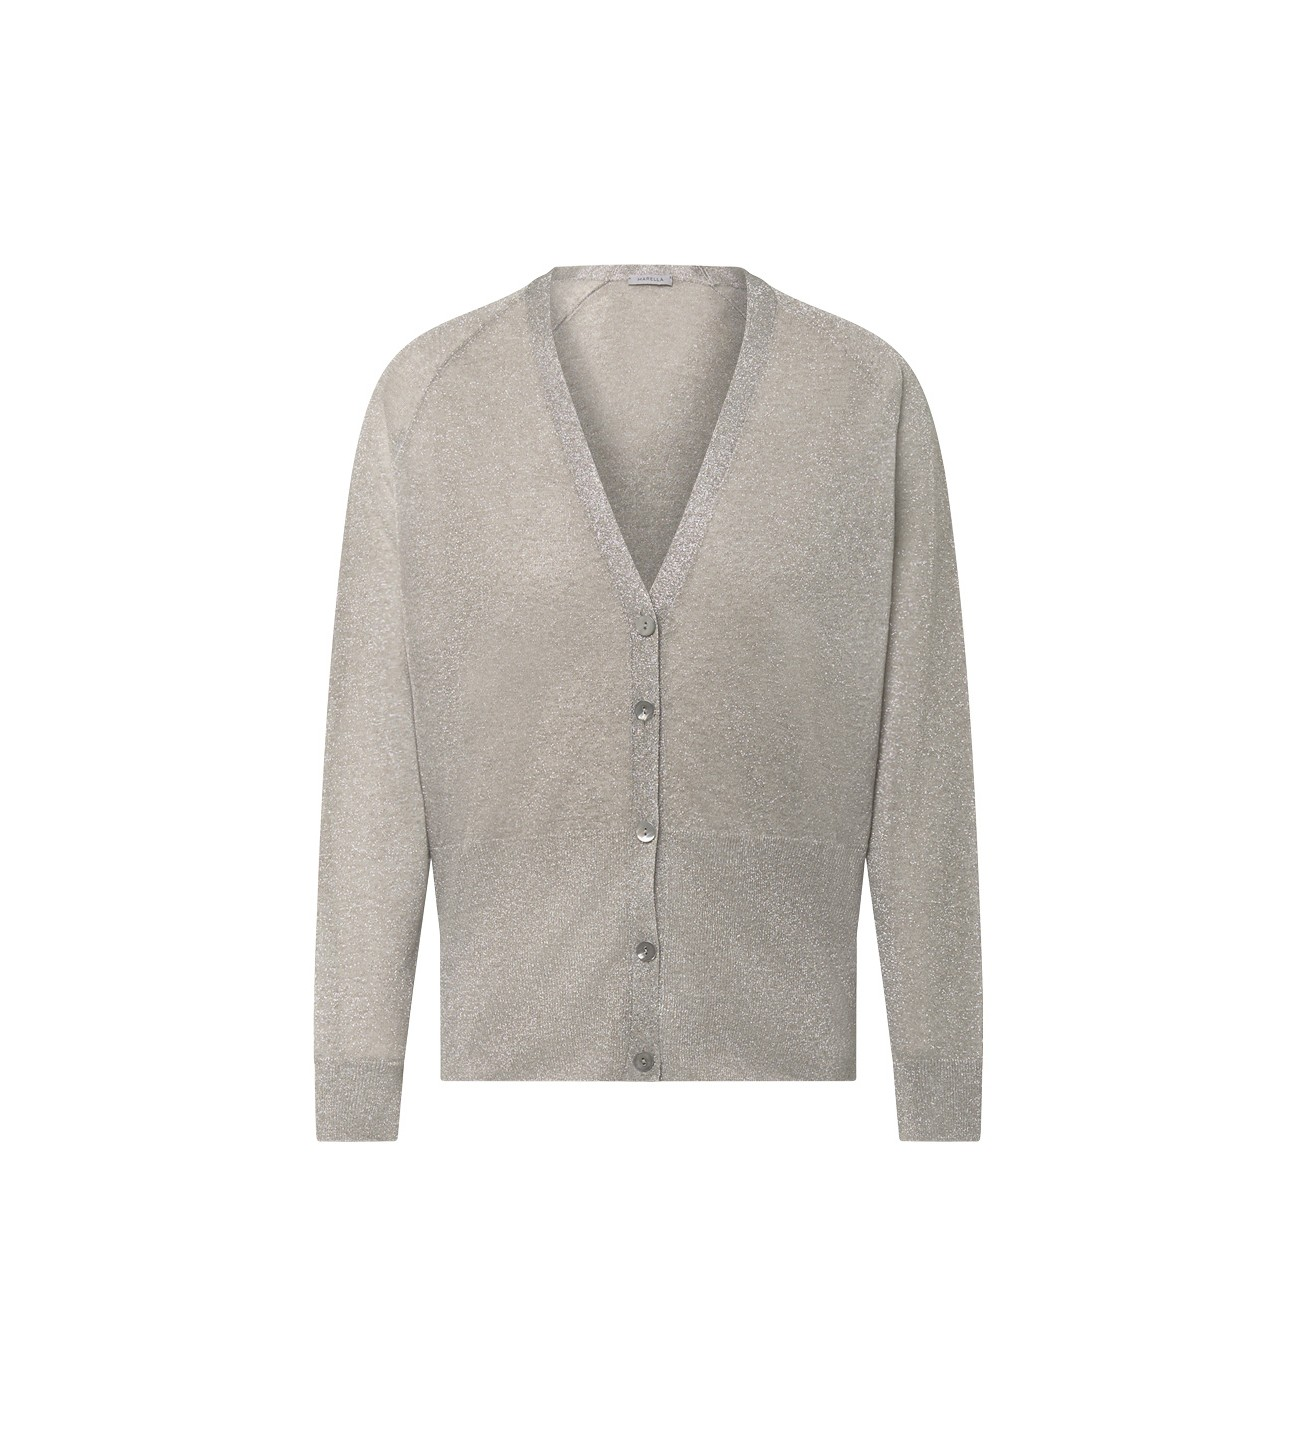 MARELLA_V_NECK_LUREX_CARDIGAN_MARIONA_FASHION_CLOTHING_WOMAN_SHOP_ONLINE_AVI